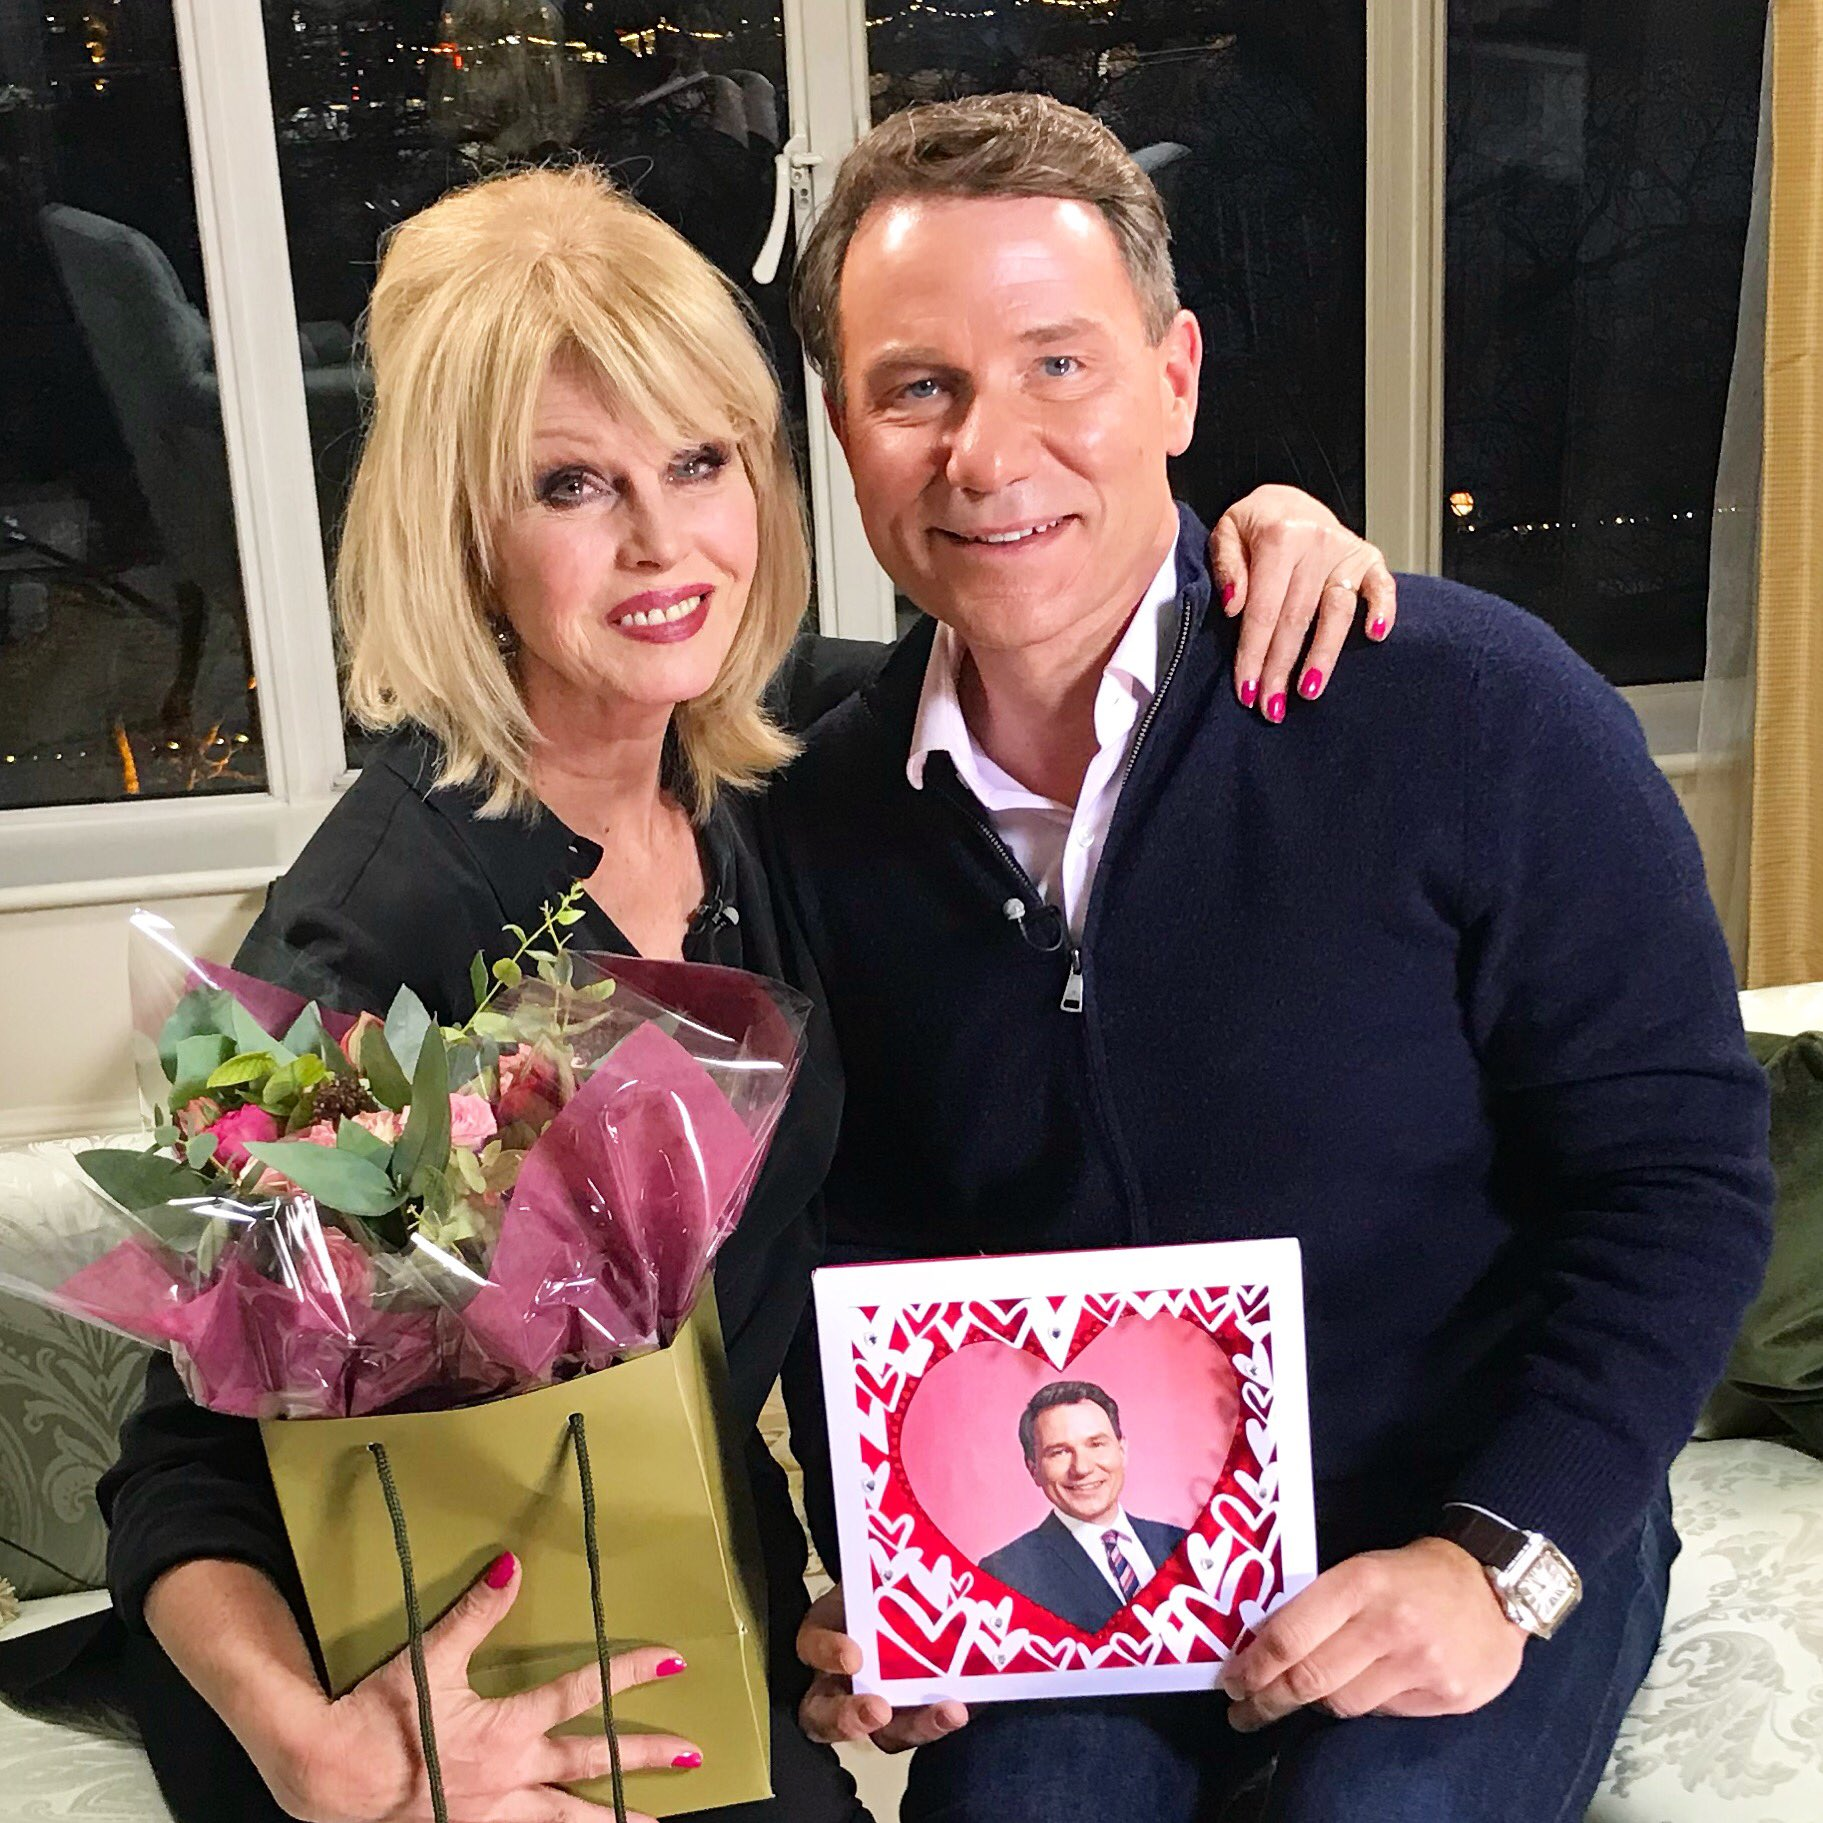 My funny Valentine - it's @JoannaLumley @gmb chatting pizazz and politics @BAFTA #gmb #BAFTAS #valentinesday https://t.co/Qx1MxFj80J